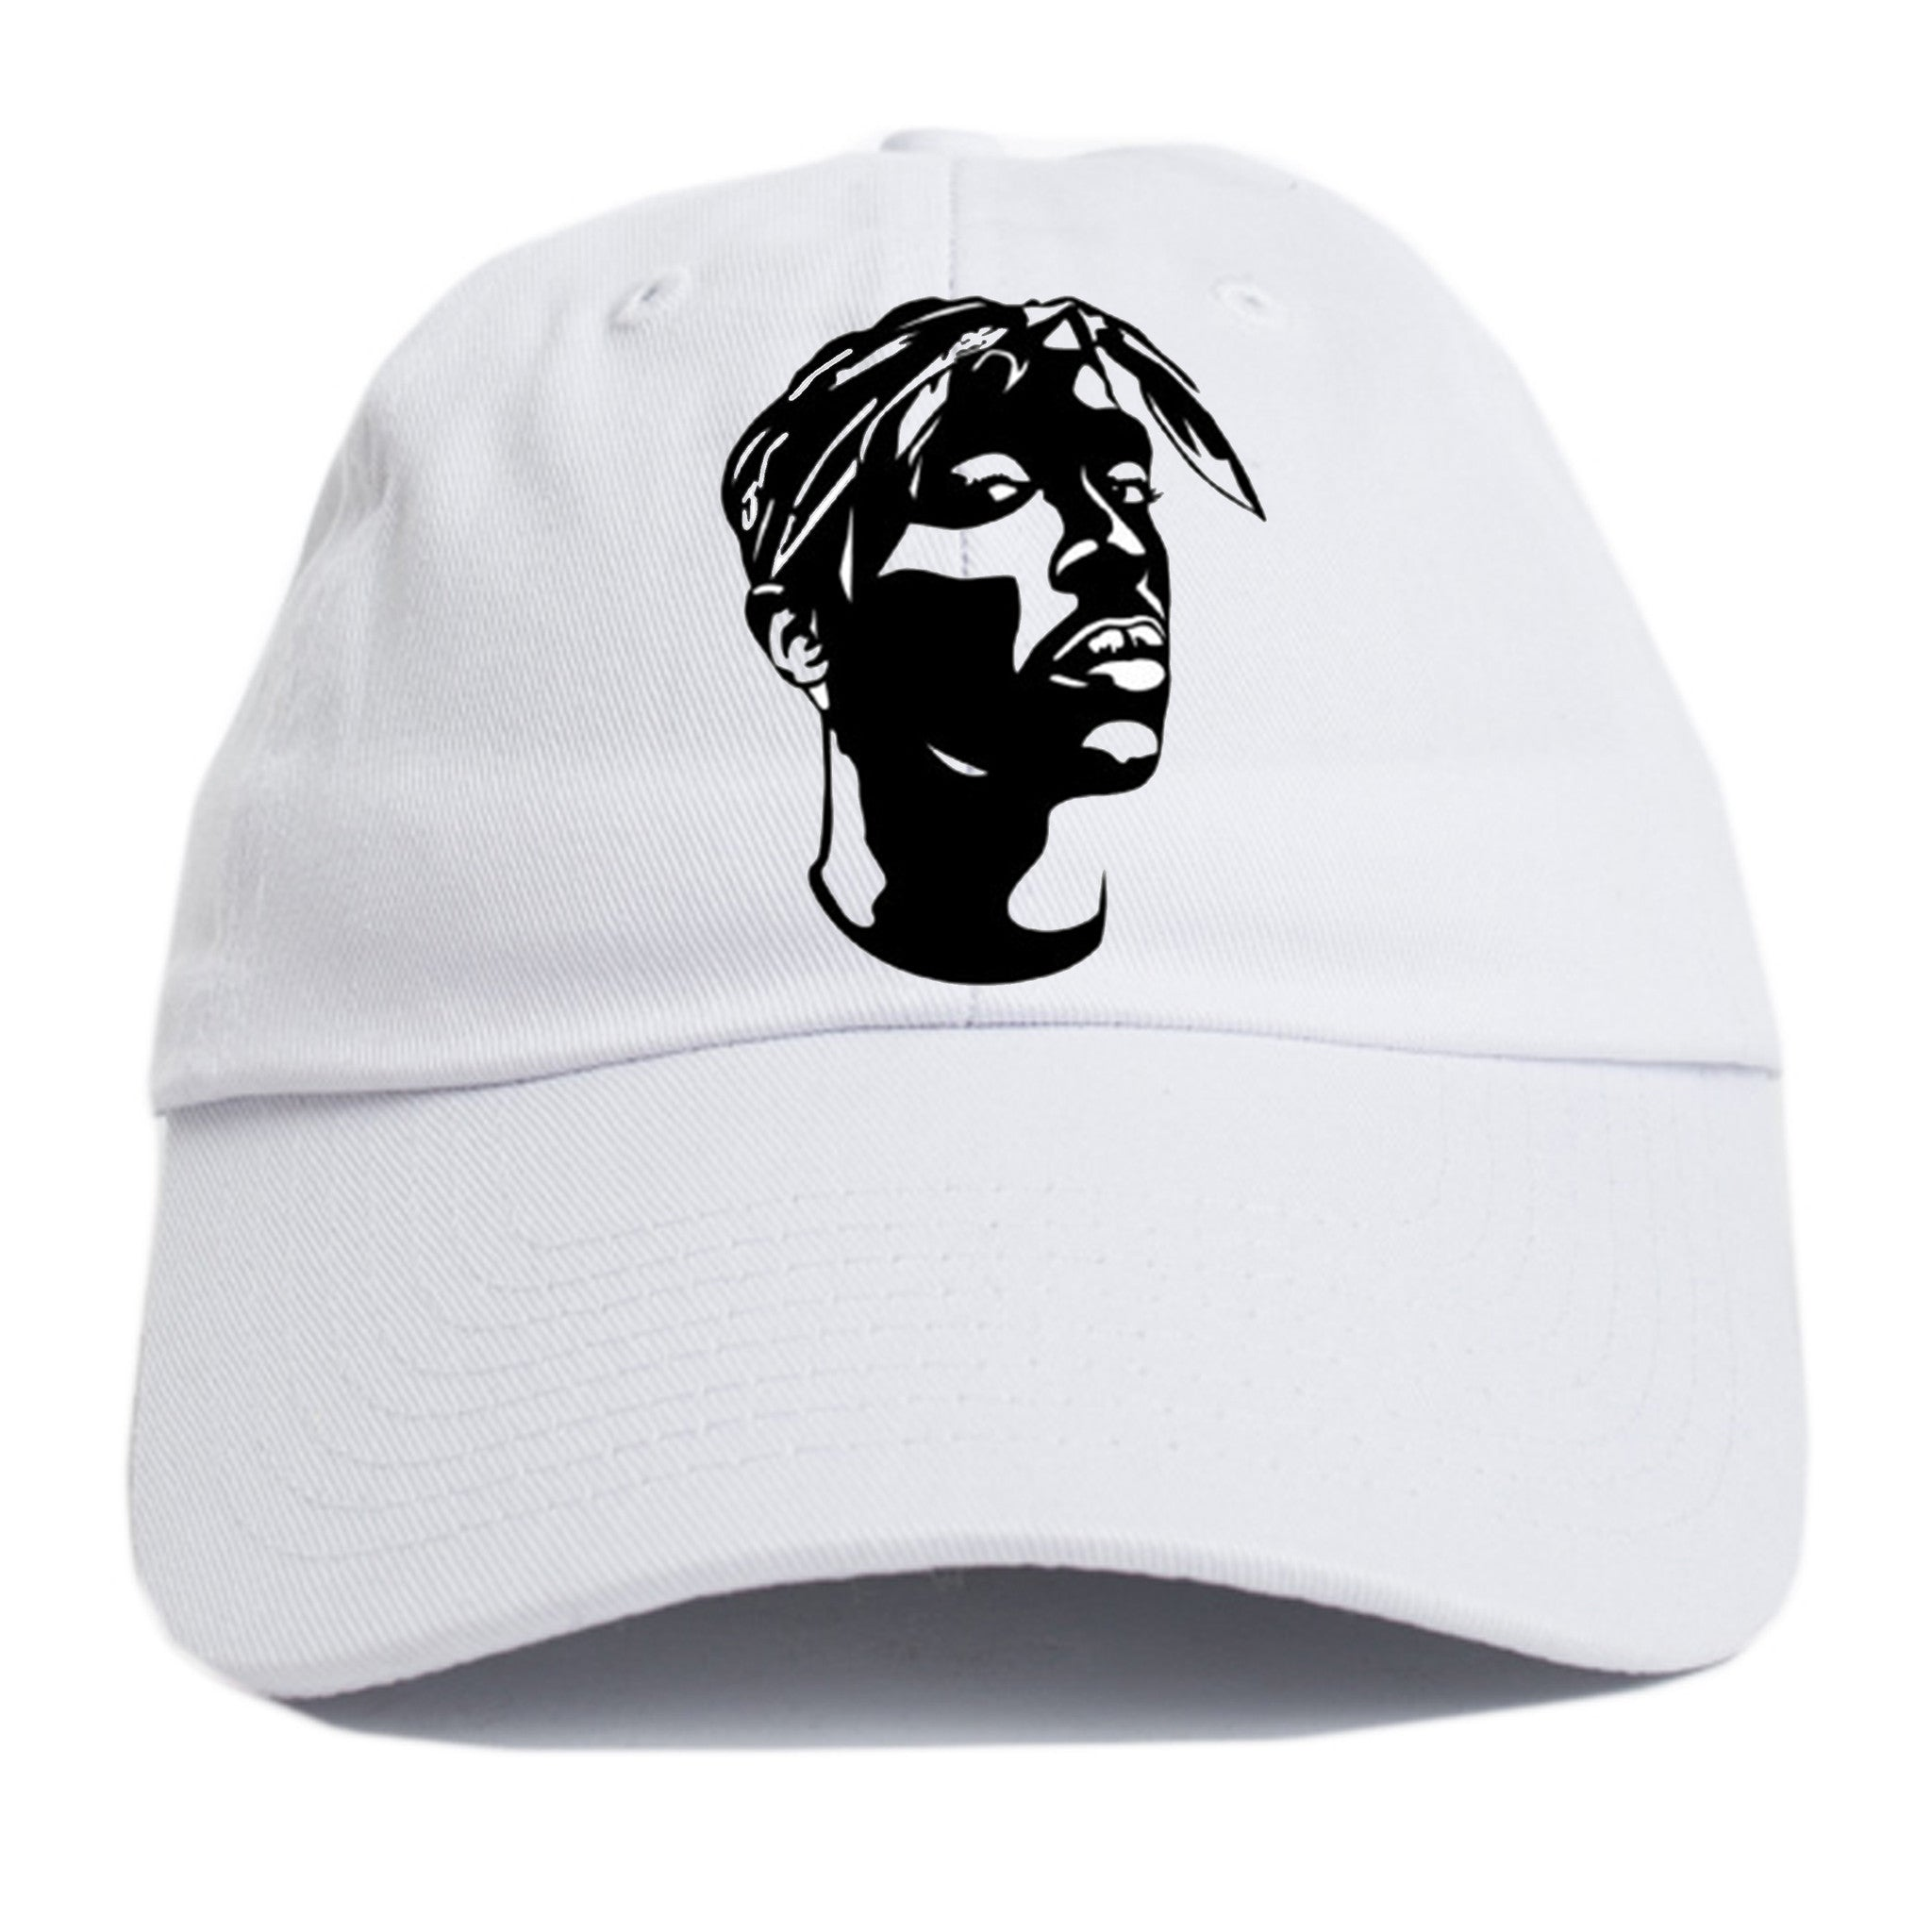 2 Pac Dad Hat - Ourt - 1